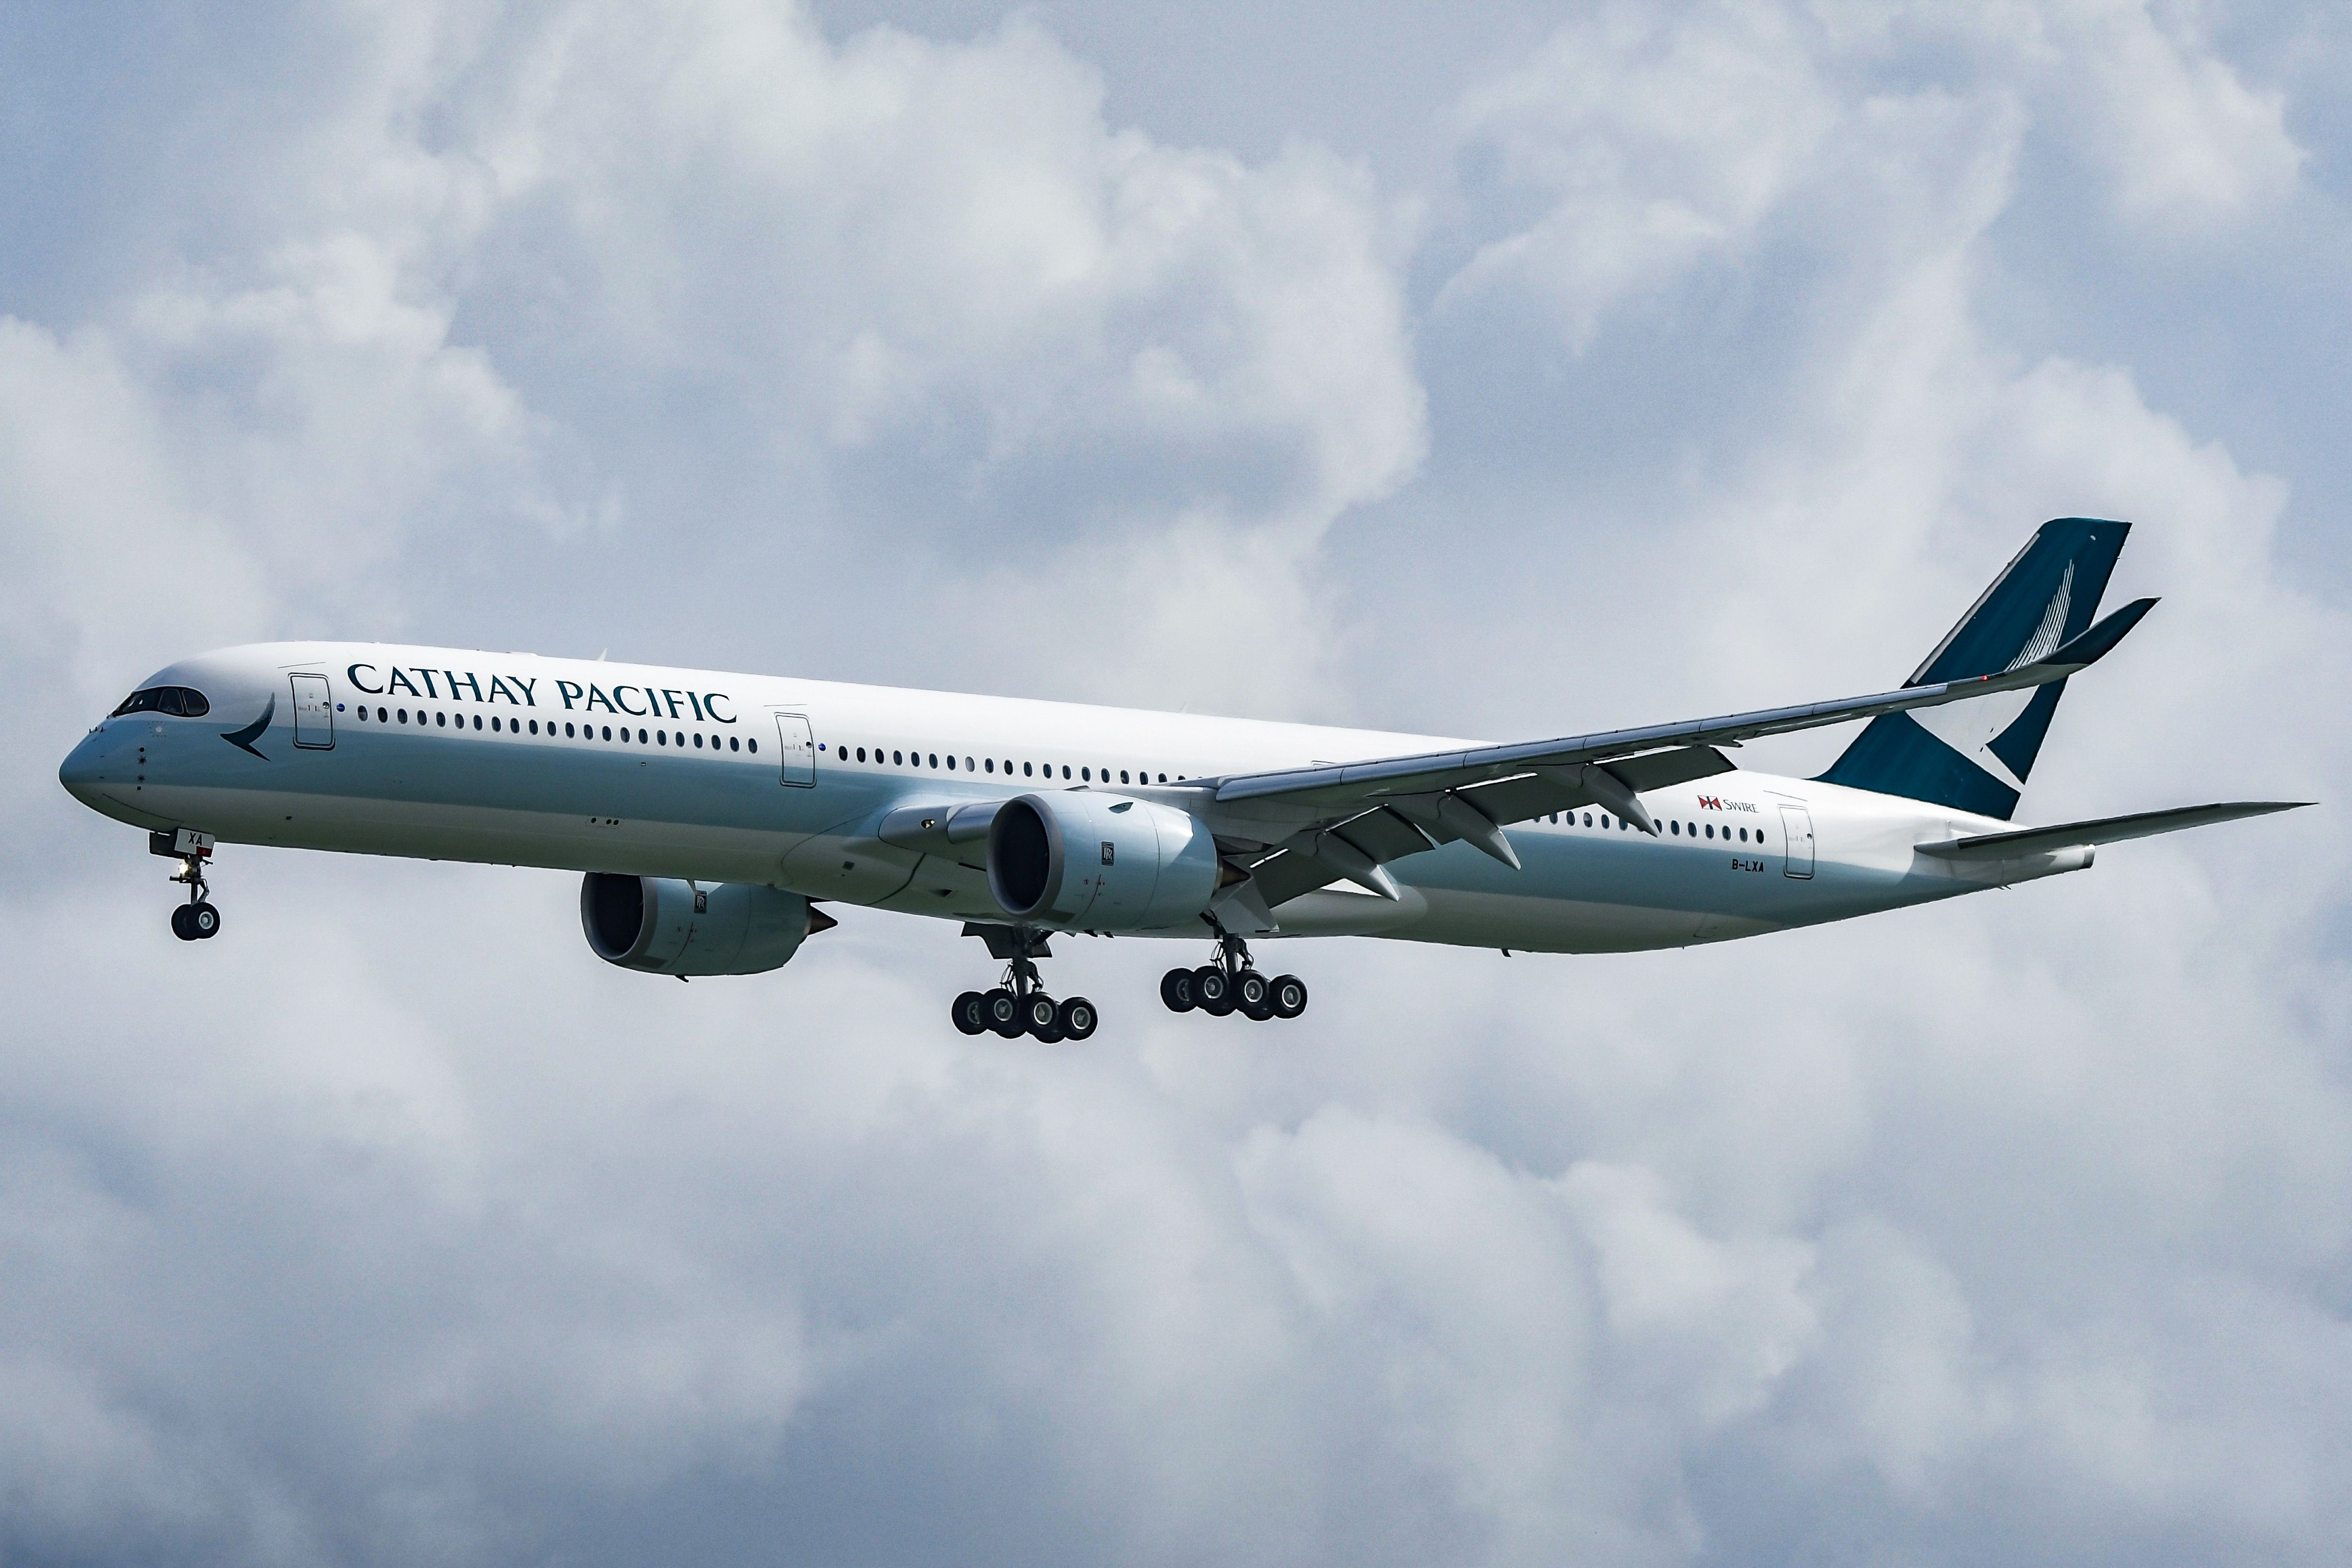 Cathay Pacific Airbus A350-1000 - B-LXA on 25R finals | Aviation. Cathay pacific. Airbus